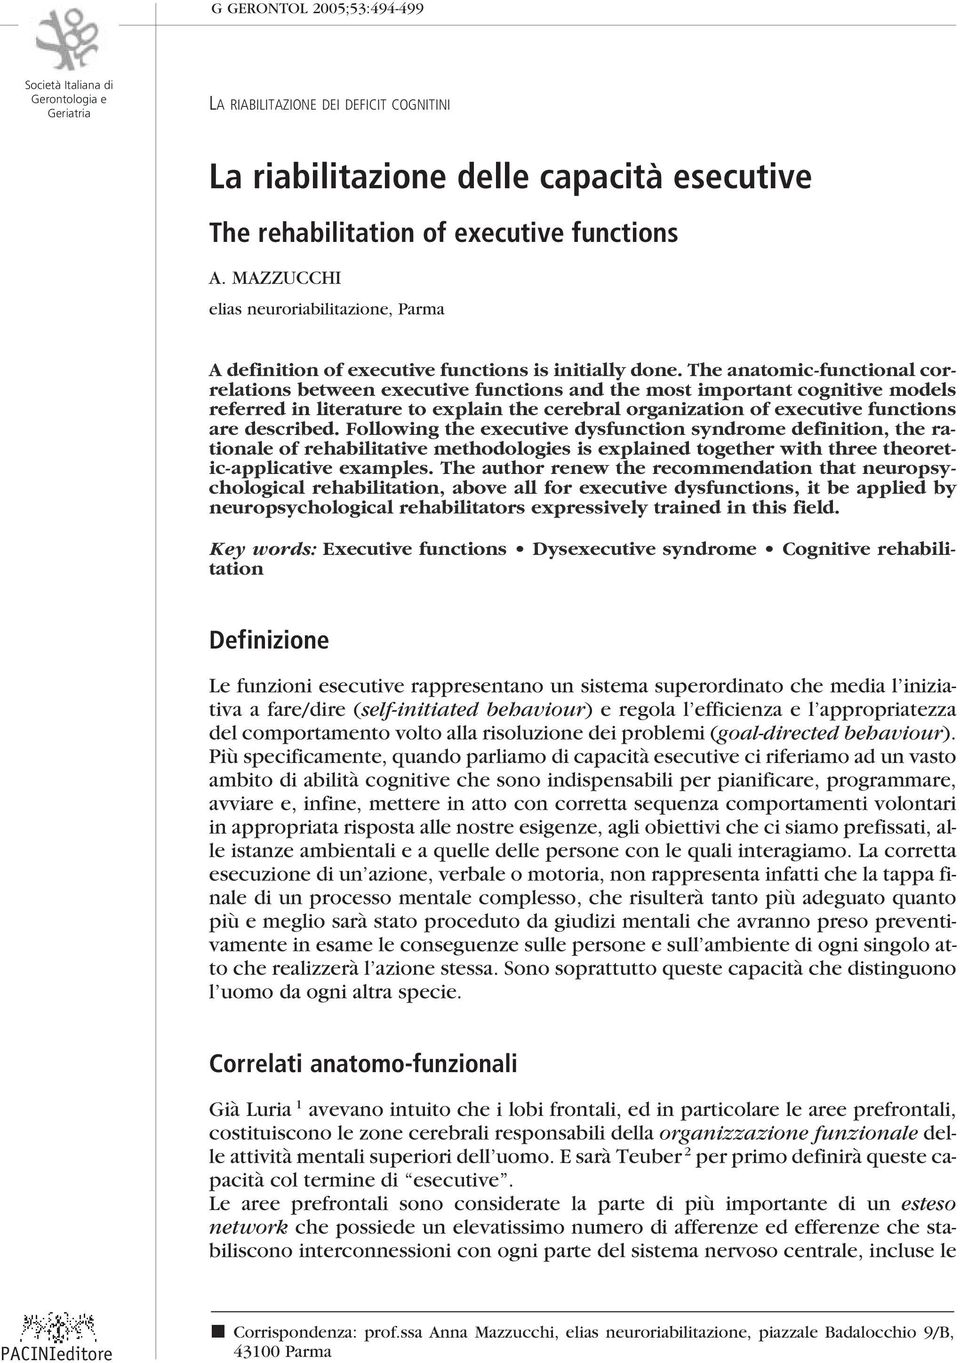 The anatomic-functional correlations between executive functions and the most important cognitive models referred in literature to explain the cerebral organization of executive functions are